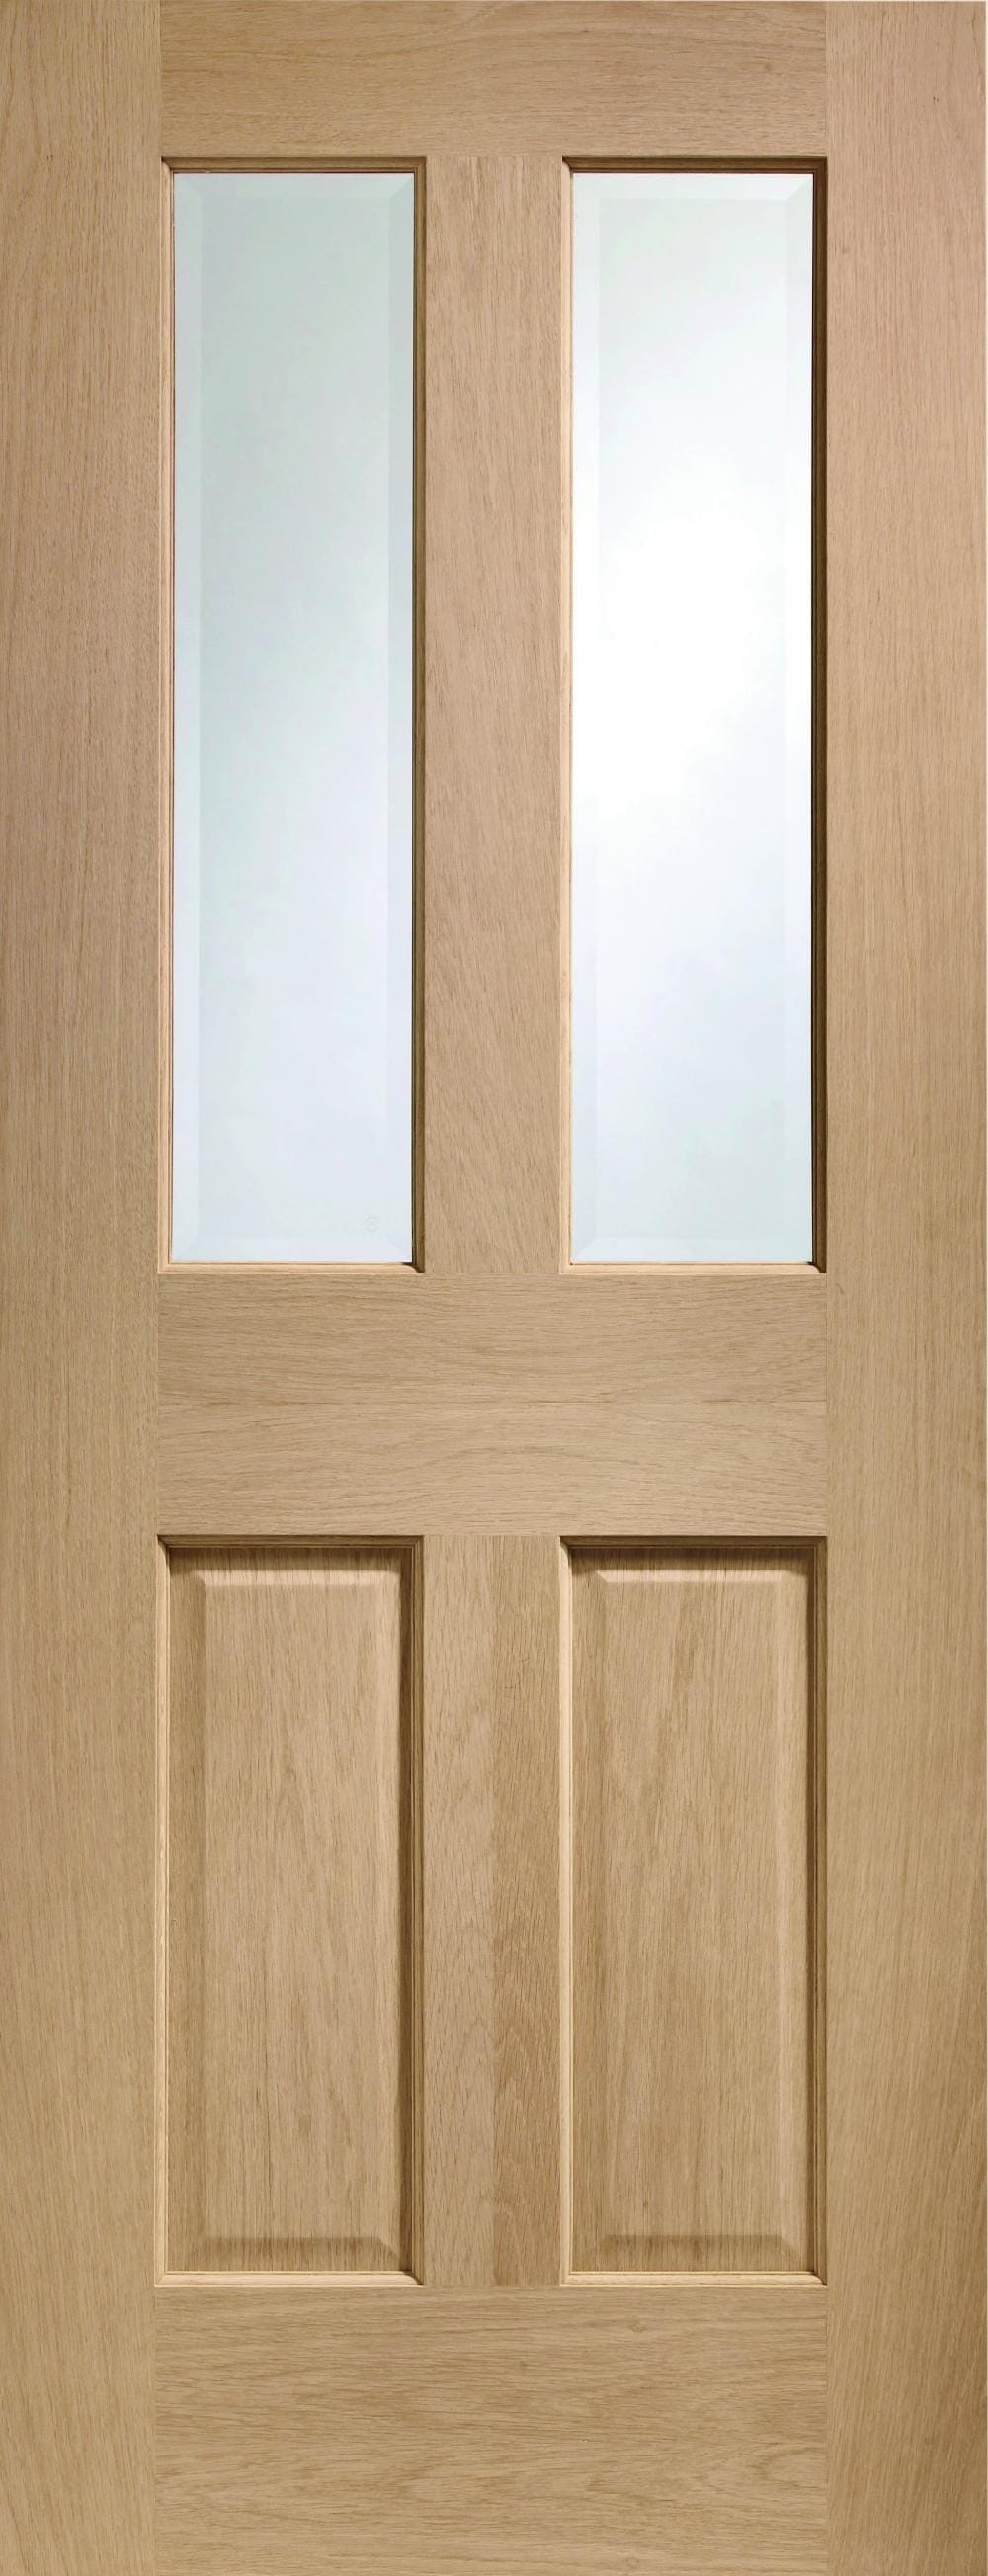 Malton Oak  - Prefinished Clear Bevelled Glass Image